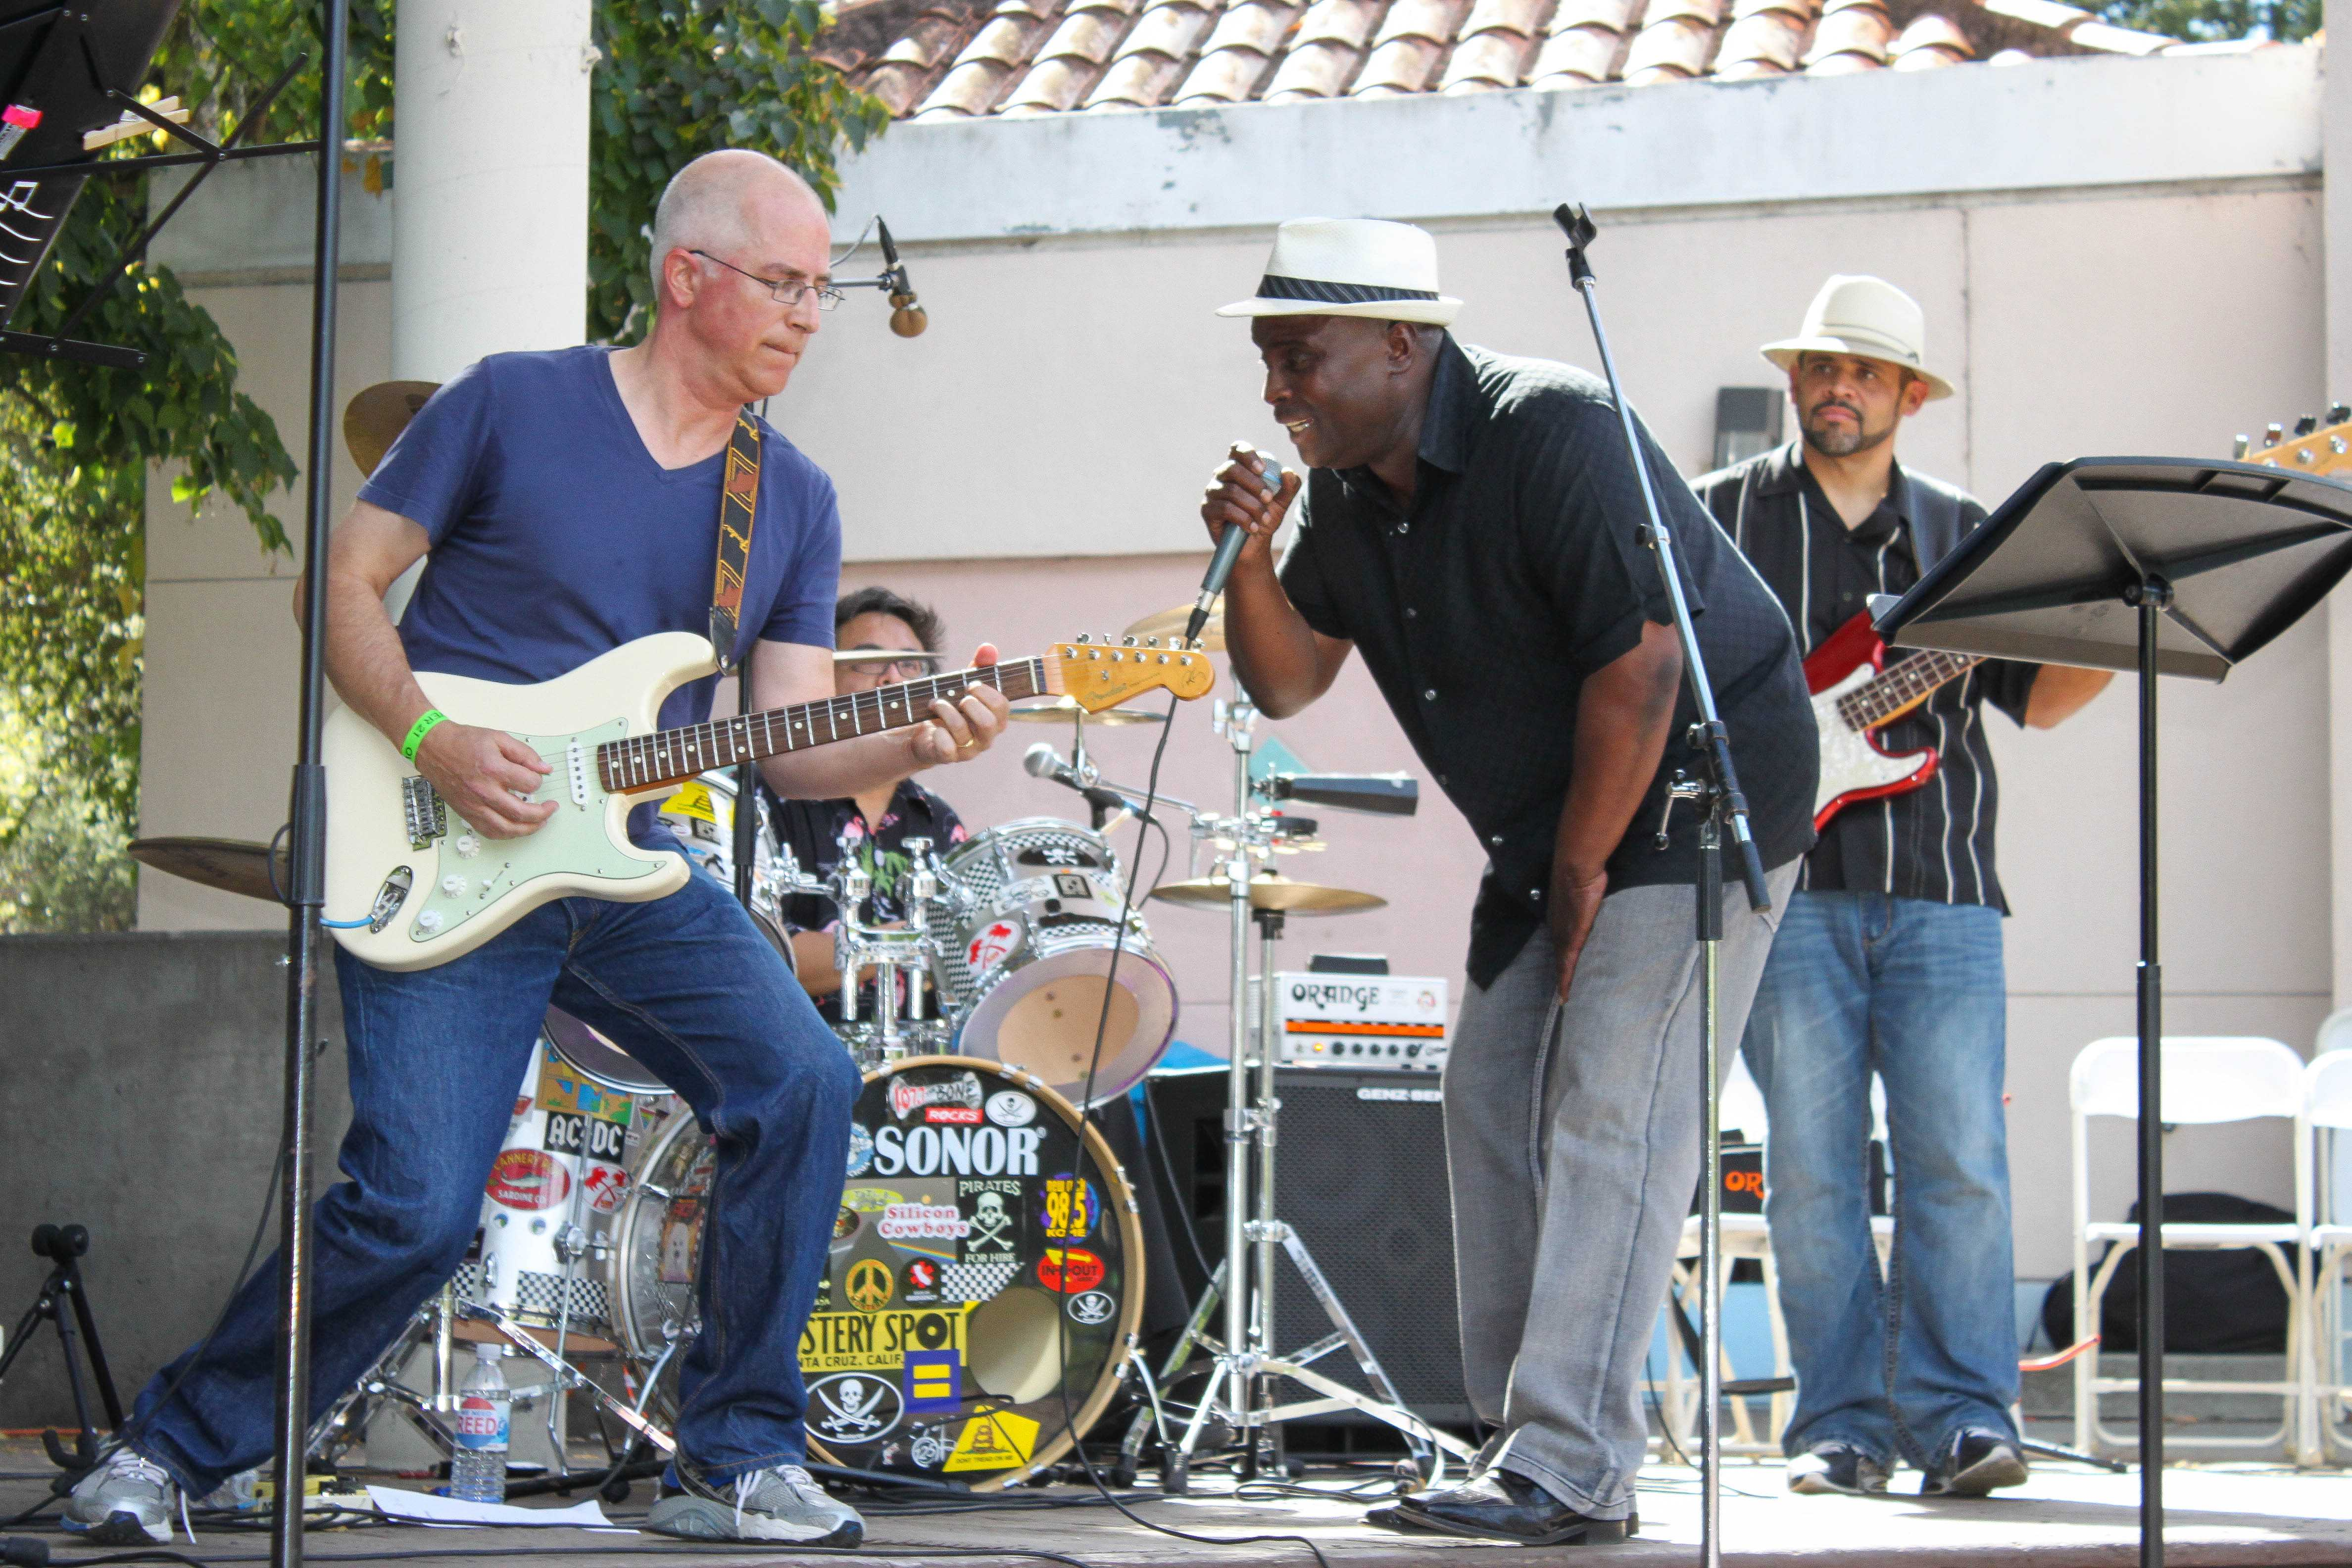 11th annual Save the Music Festival brings smiles to community